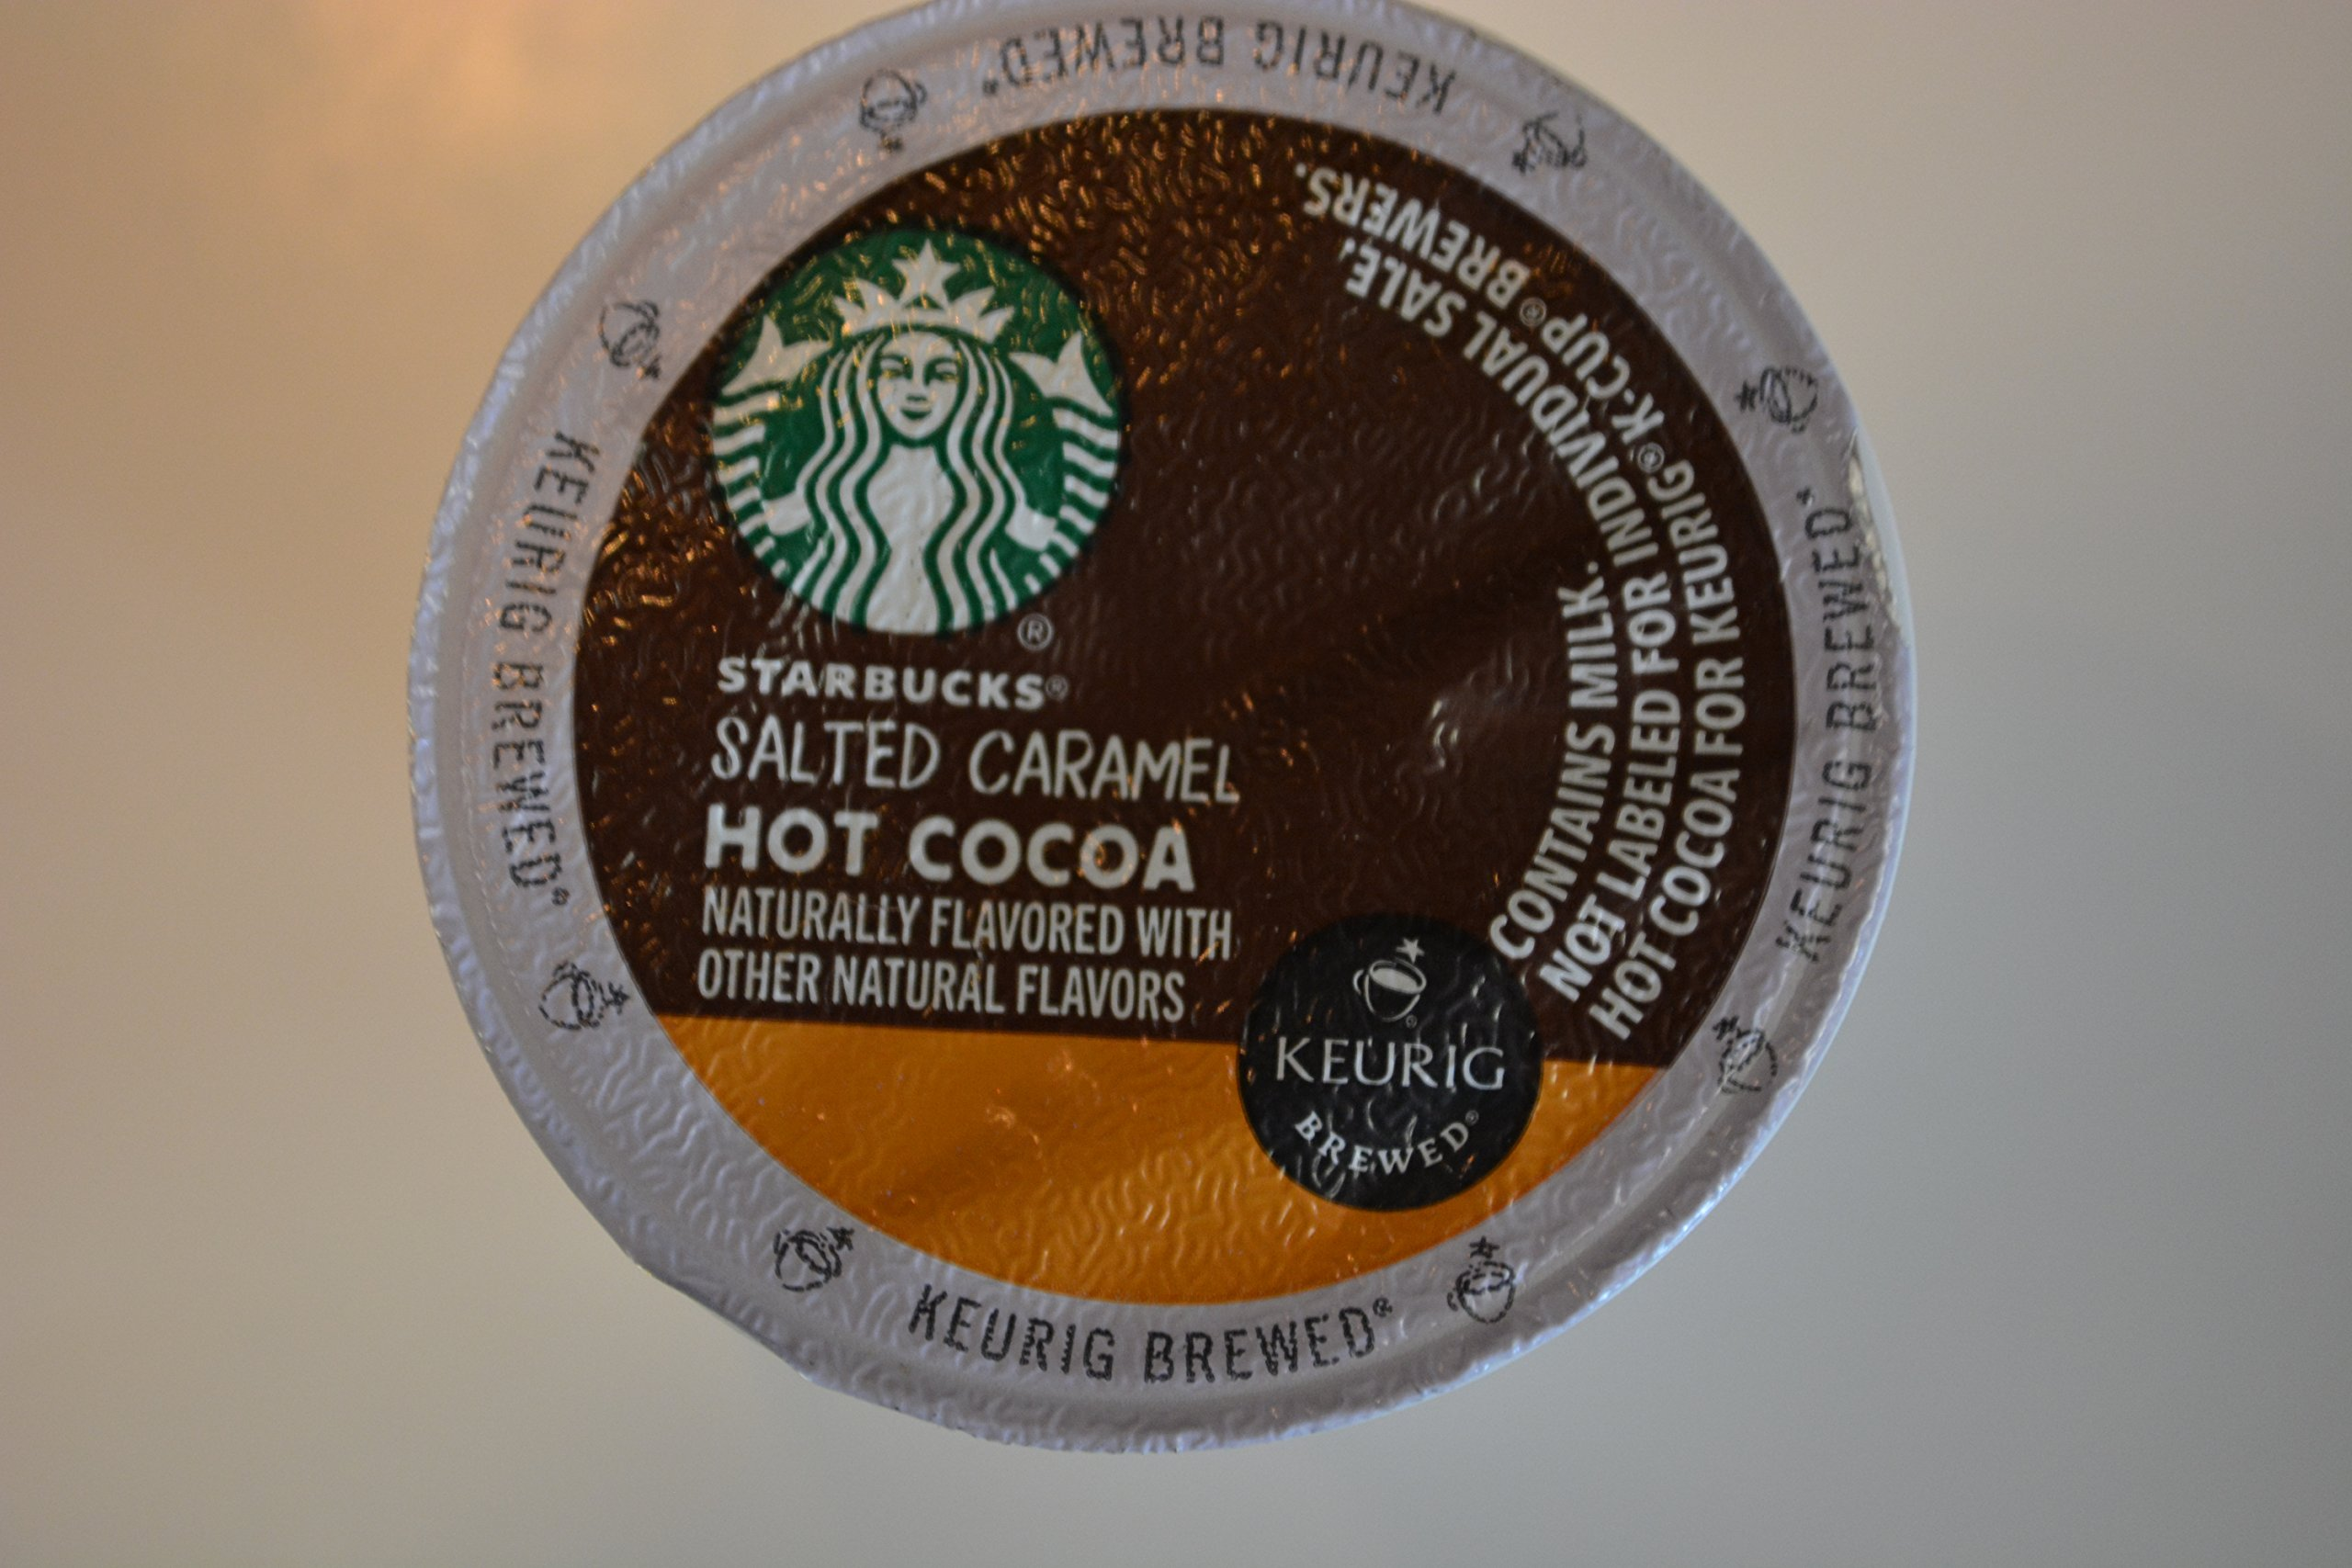 Starbucks Salted Caramel Hot Cocoa, 16 Count